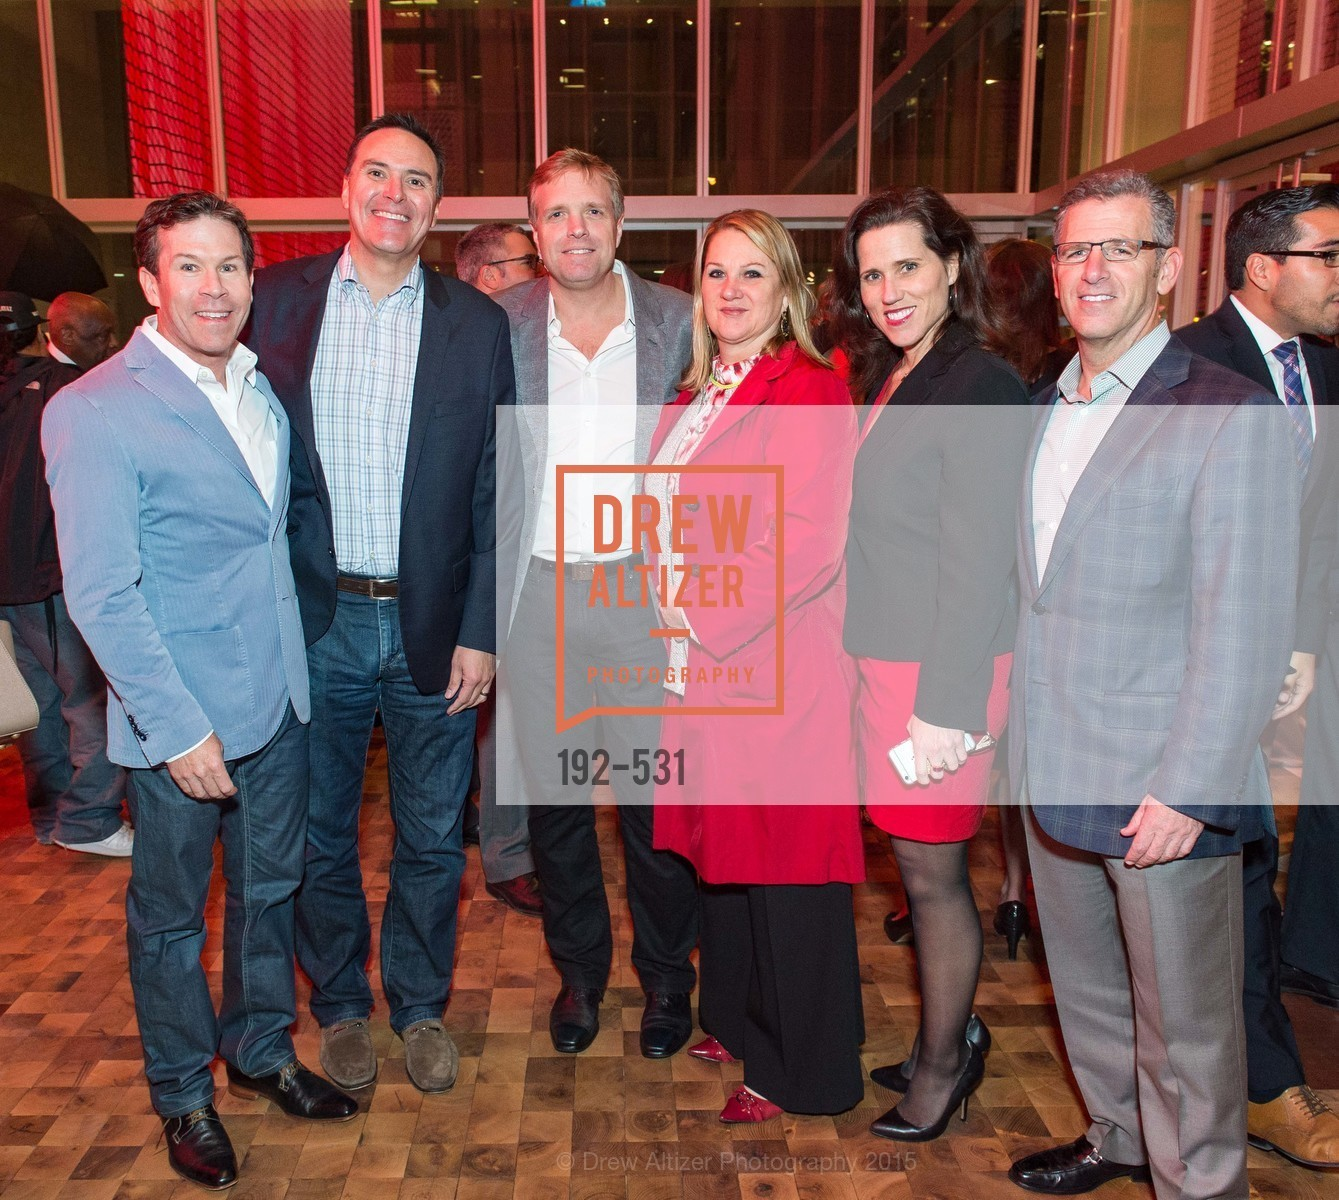 Jeff Sciaroni, Charles Gehring, Jeff Peters, Sandra Schmit, Stefanie Hay, Jeff Oster, Kilroy Unveiling Presents Virtual Depictions: San Francisco by Refik Anadol, 350 Mission Street. 350 Mission Street, November 16th, 2015,Drew Altizer, Drew Altizer Photography, full-service agency, private events, San Francisco photographer, photographer california